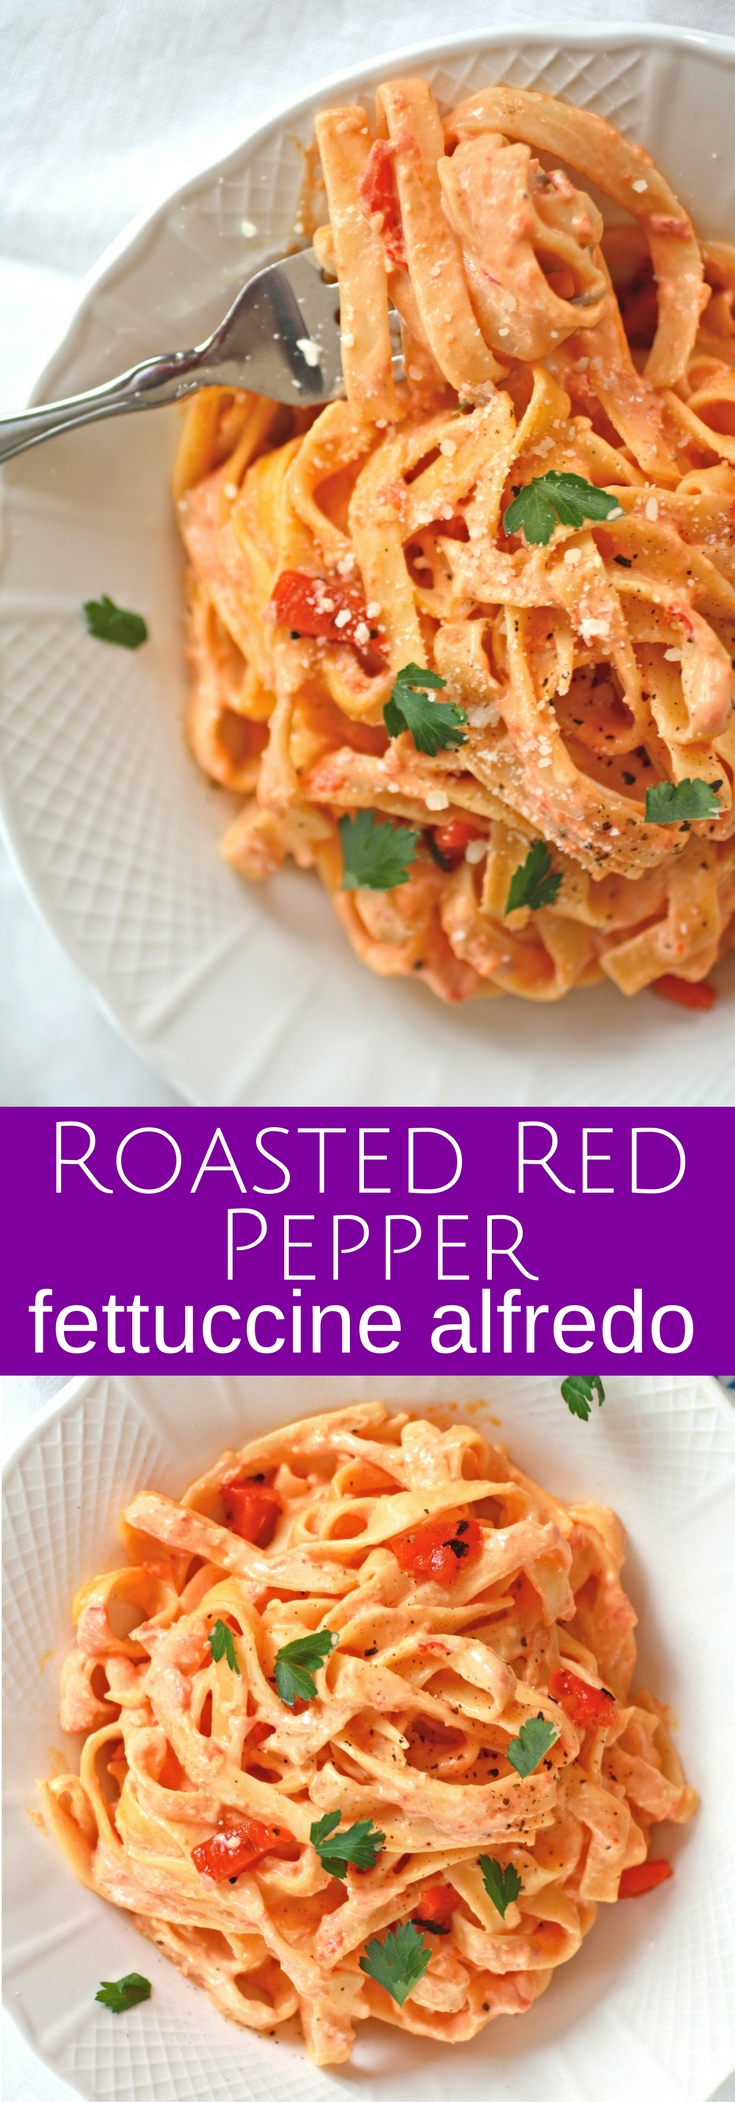 Roasted Red Pepper Fettuccine Alfredo is an easy-to-make and delicious pasta dish everyone will love! It's big on flavor!